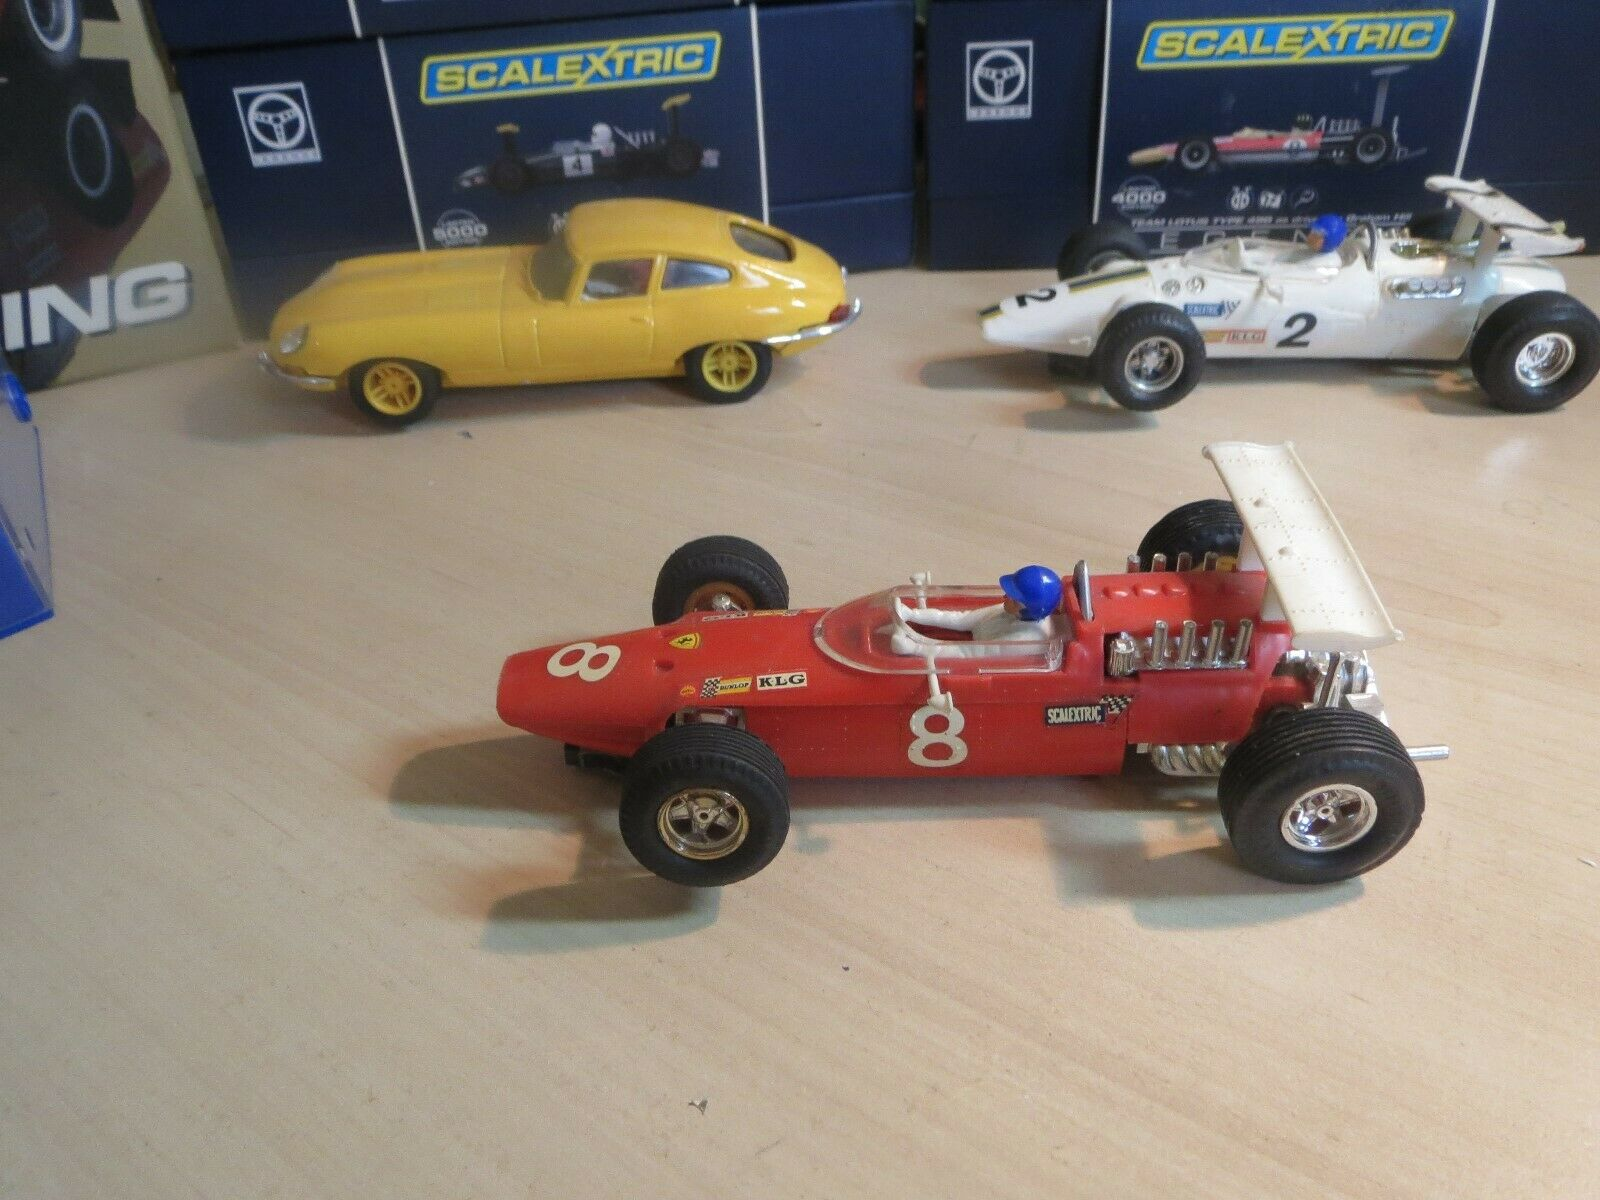 SCALEXTRIC 1960's C9  NO8 FERRARI V8 in RED  POWERSLEDGE SUPERB